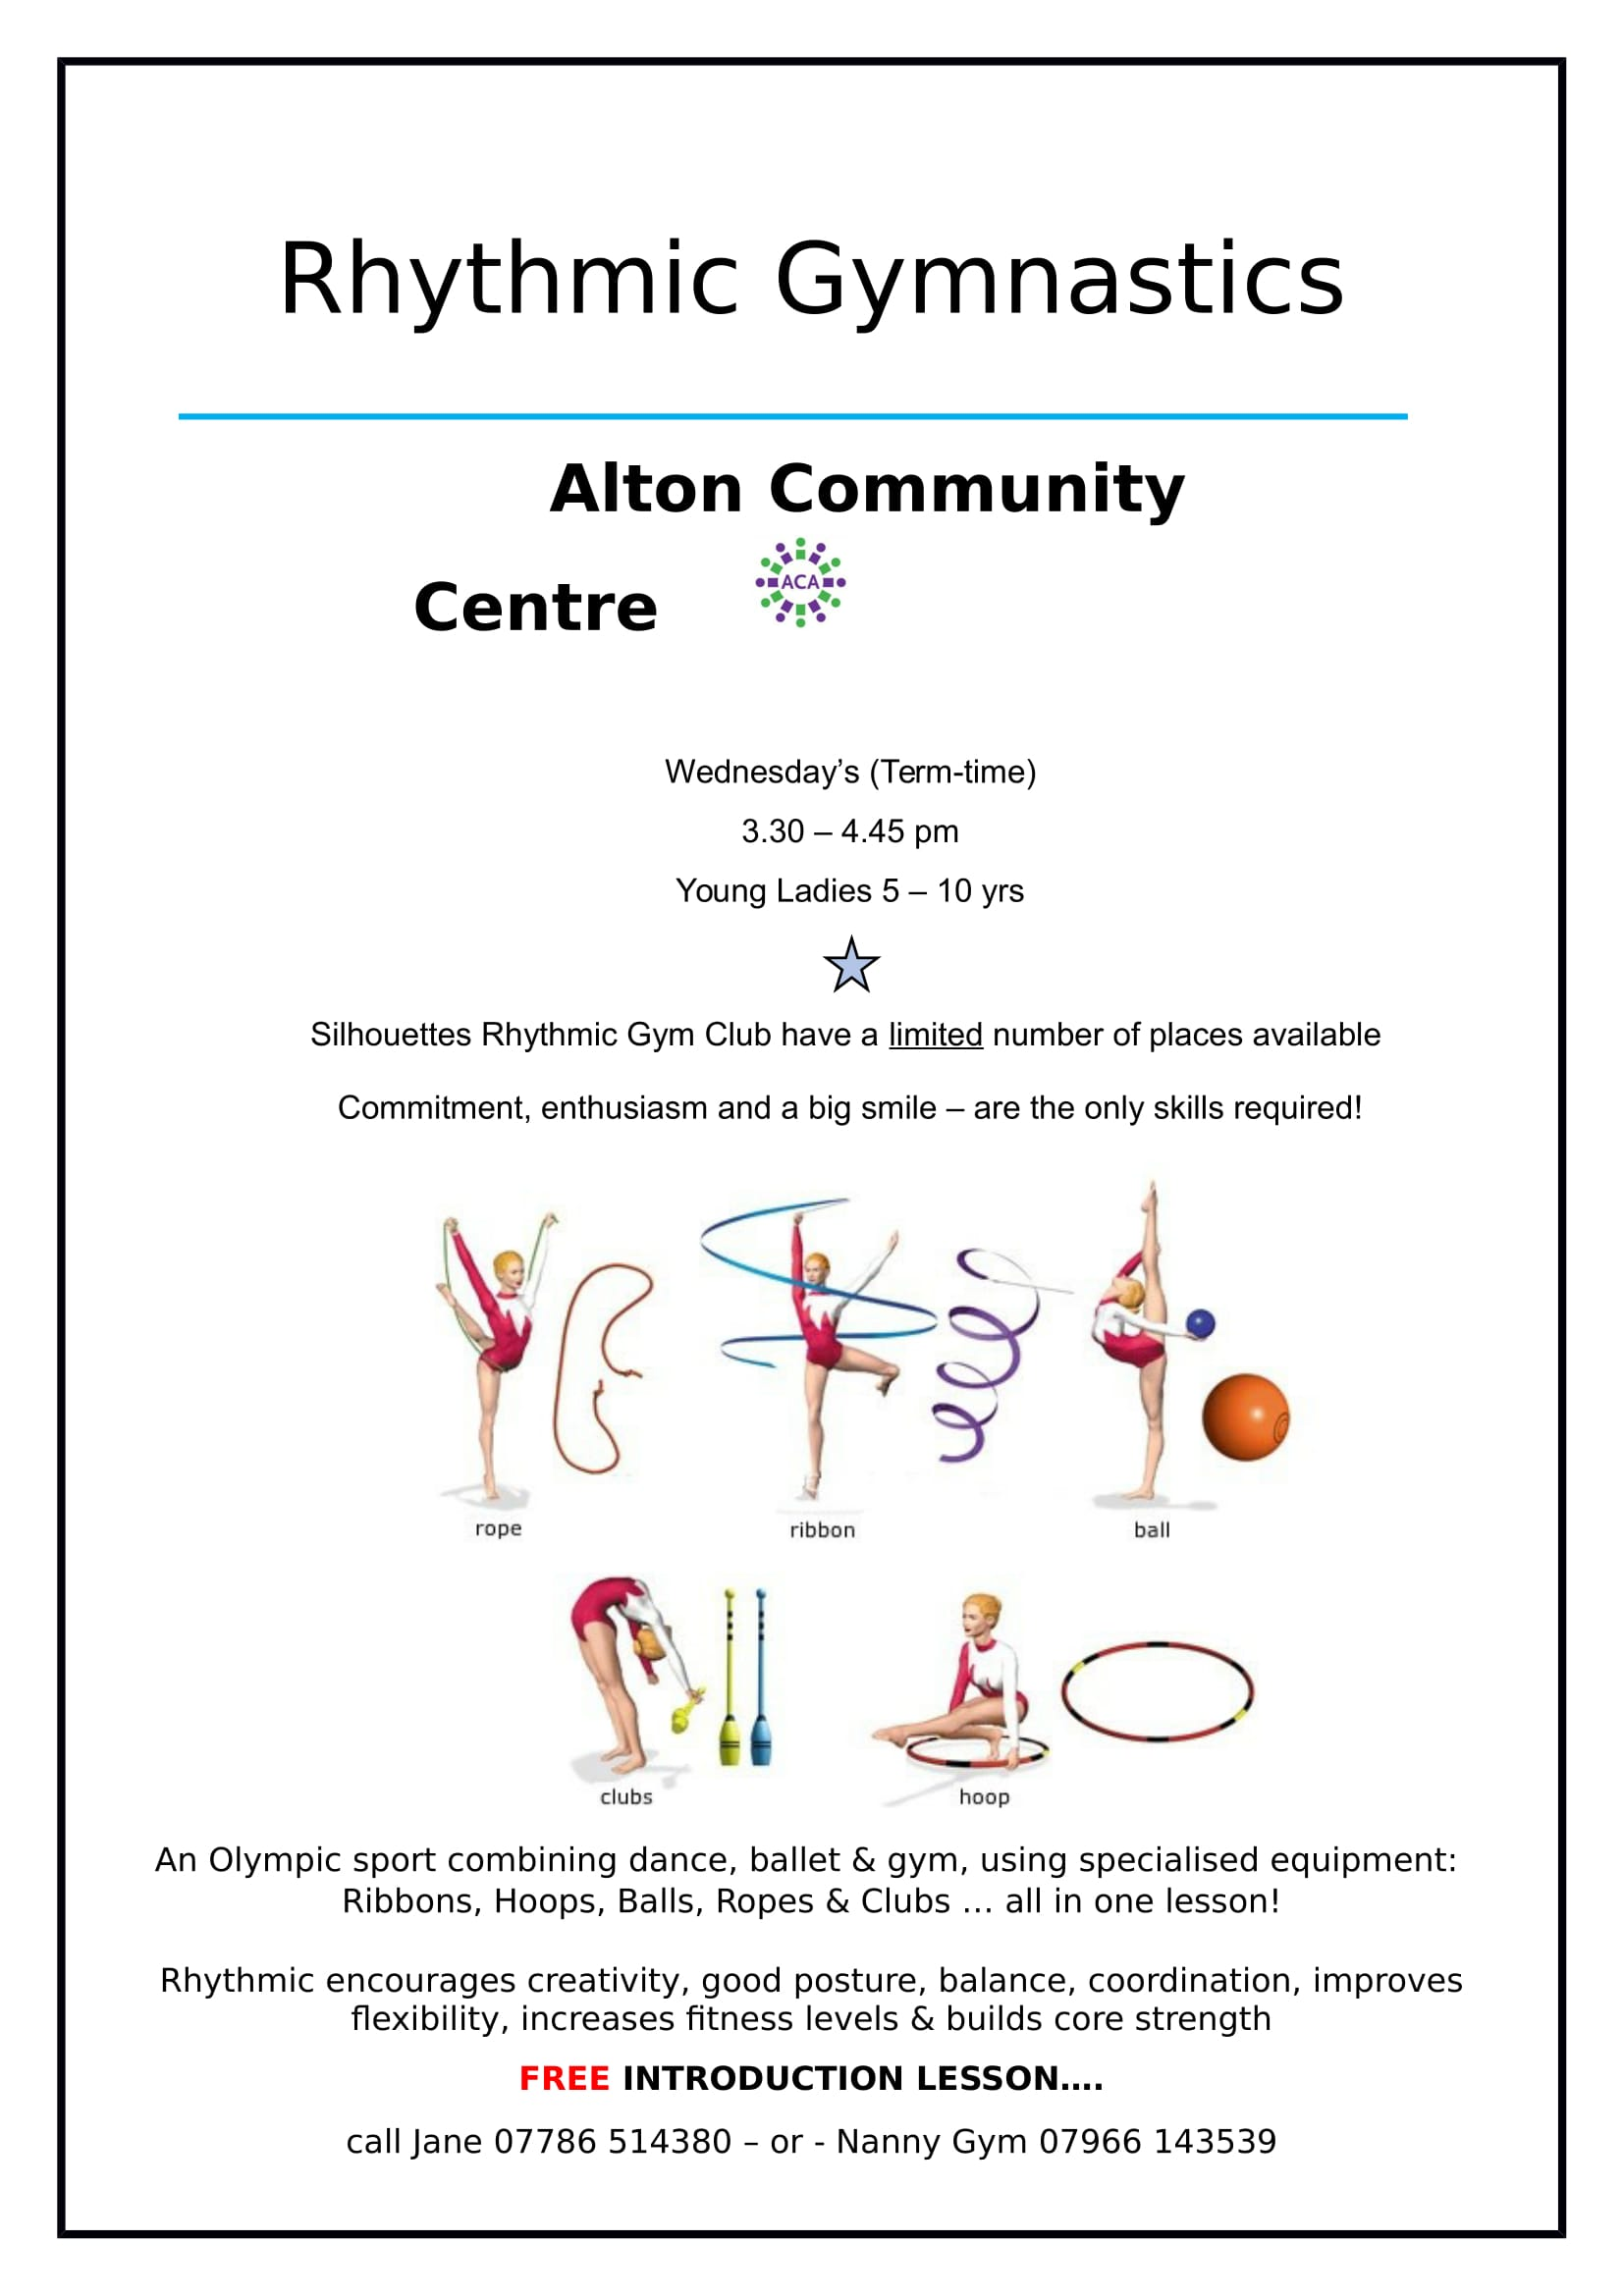 Alton Community Centre Rhythmic Gymnastics